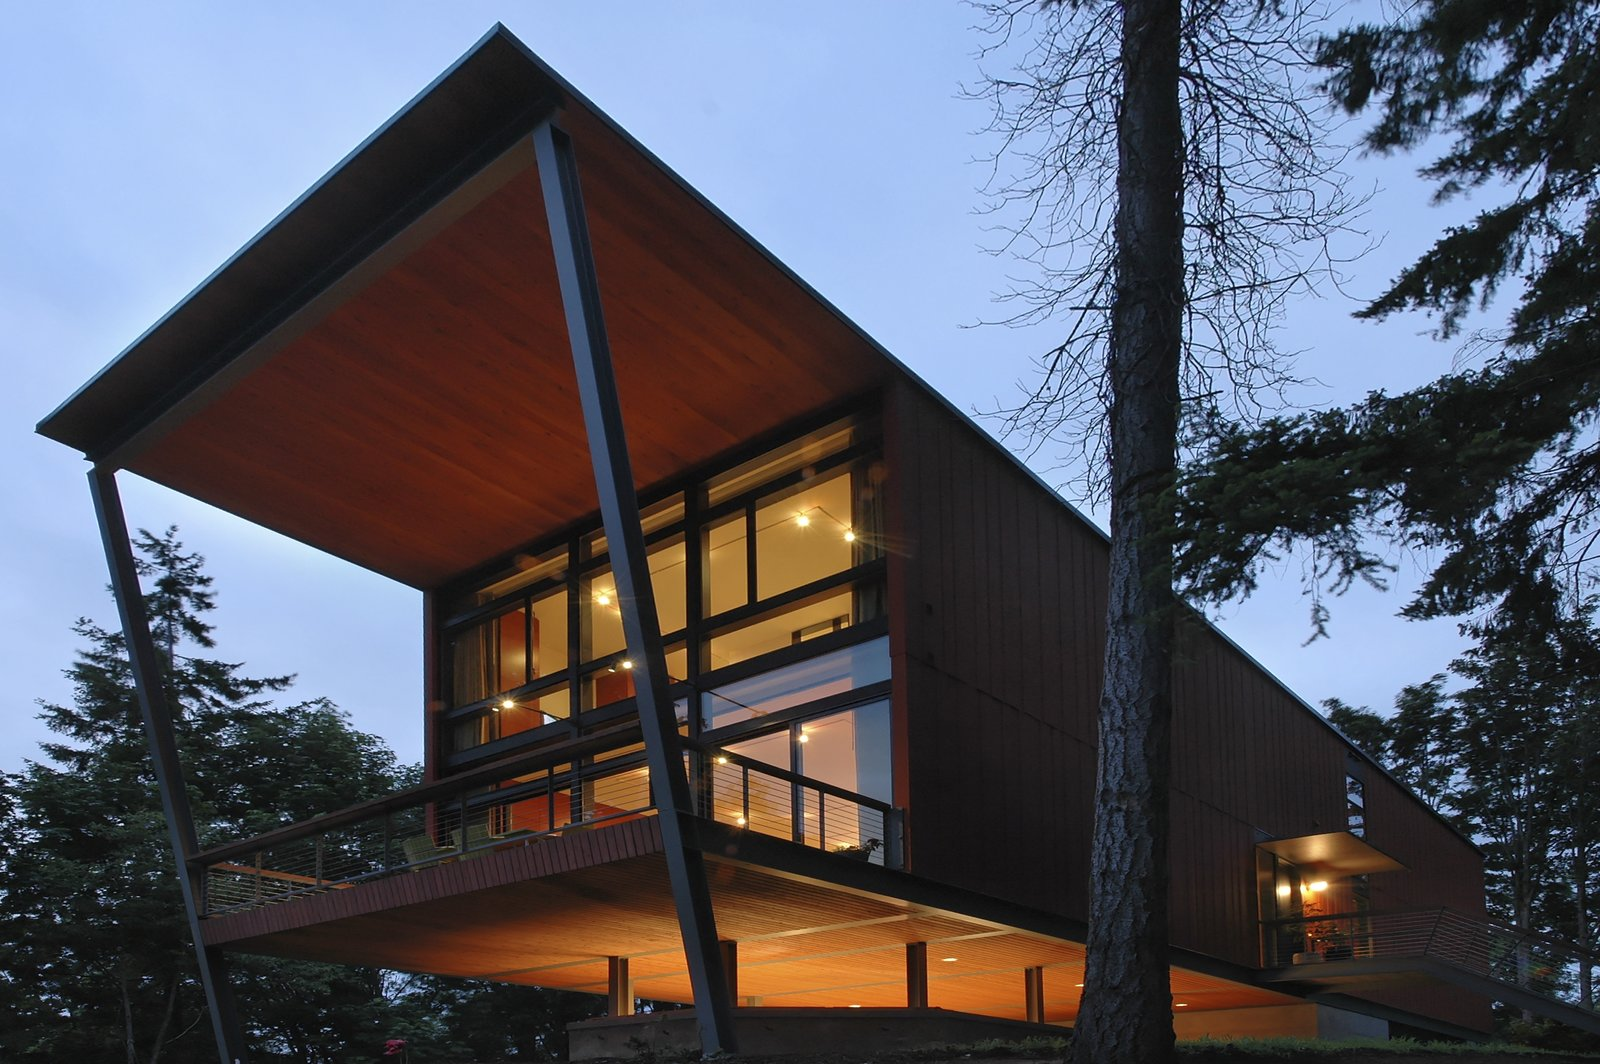 Exterior The home cantilevers out over its historic bunker base.   Photo 1 of 8 in A Cantilevered Bainbridge Island Home Set Atop a Historic Bunker Lists For $1.73M from Stunning Steel-Frame Construction Cantilevered atop Historic Bunker For Sale